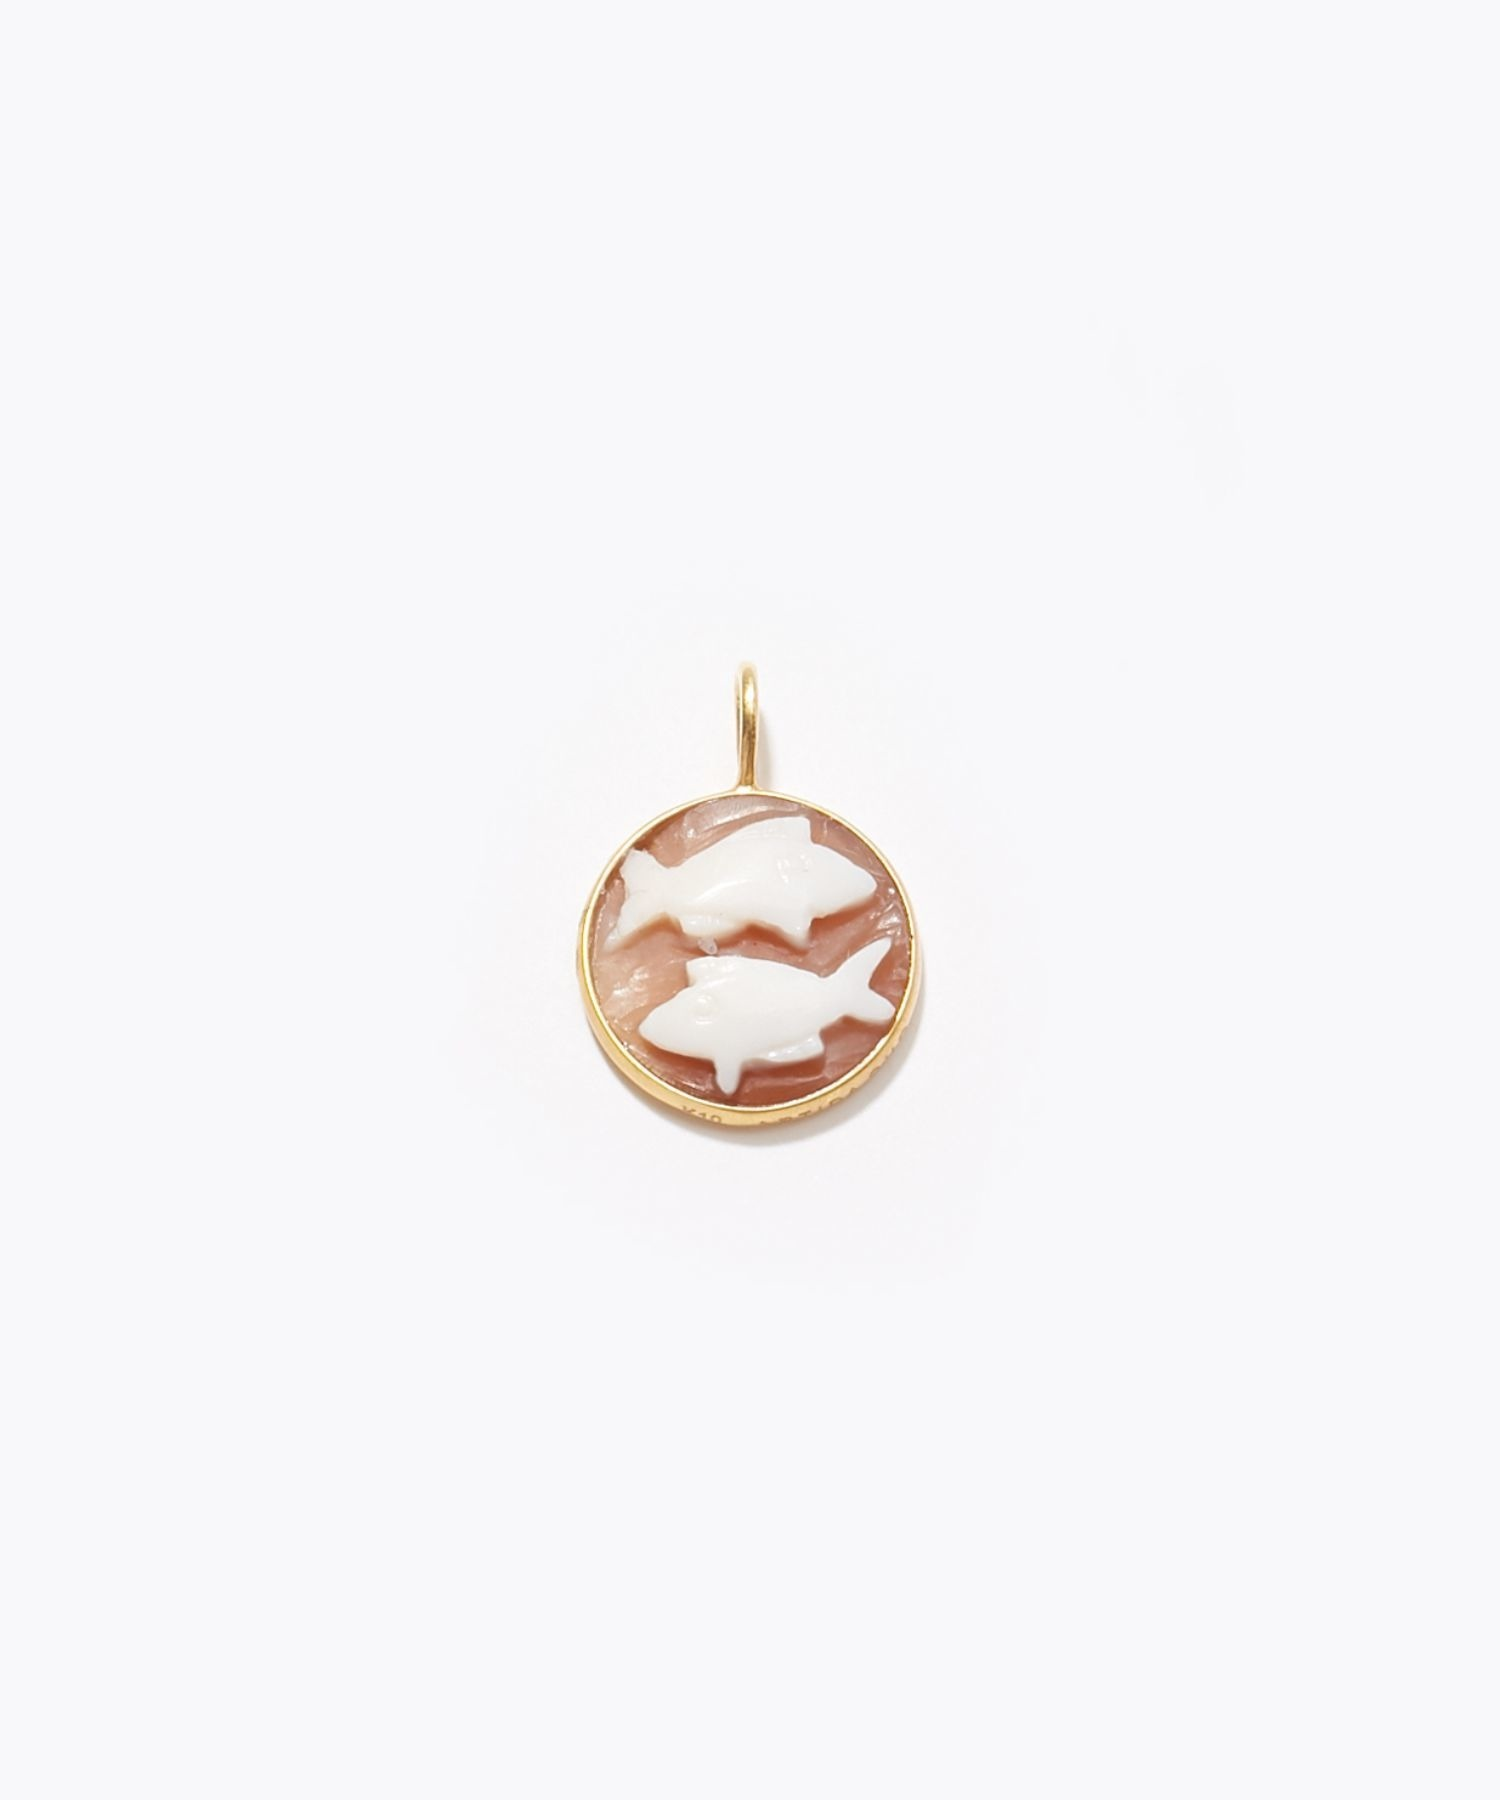 [constellation] Pisces cameo curving charm